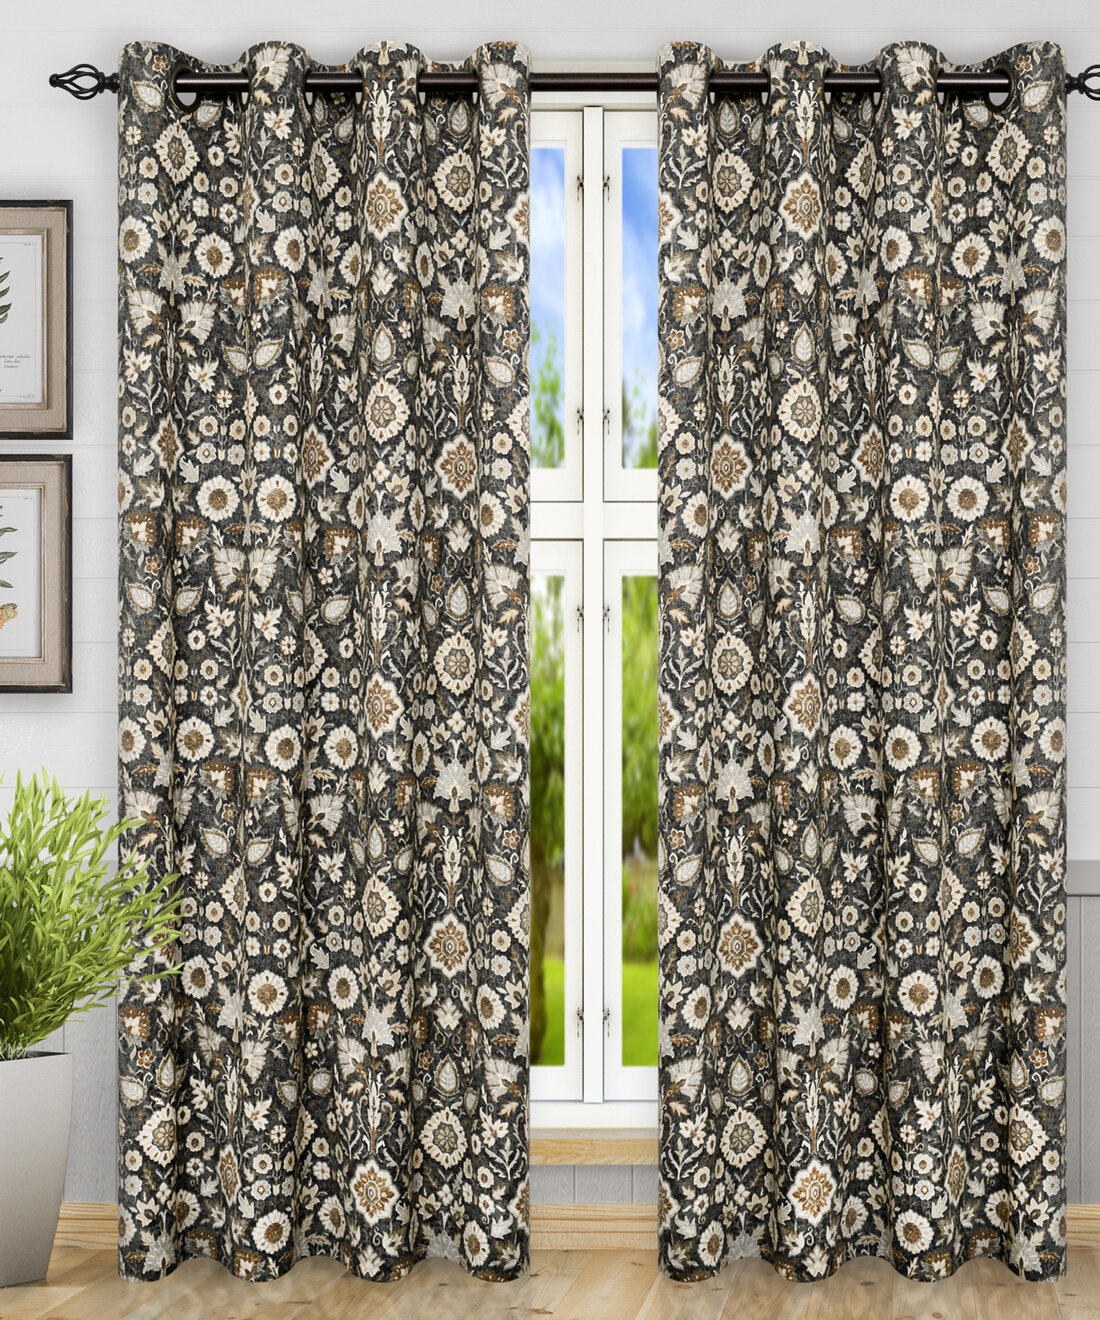 grommet click large single grommetcurtain embroidered sightly semi overstock size of fabric to wide sheer curtains lombard on window floor expand zq curtain fancy panels